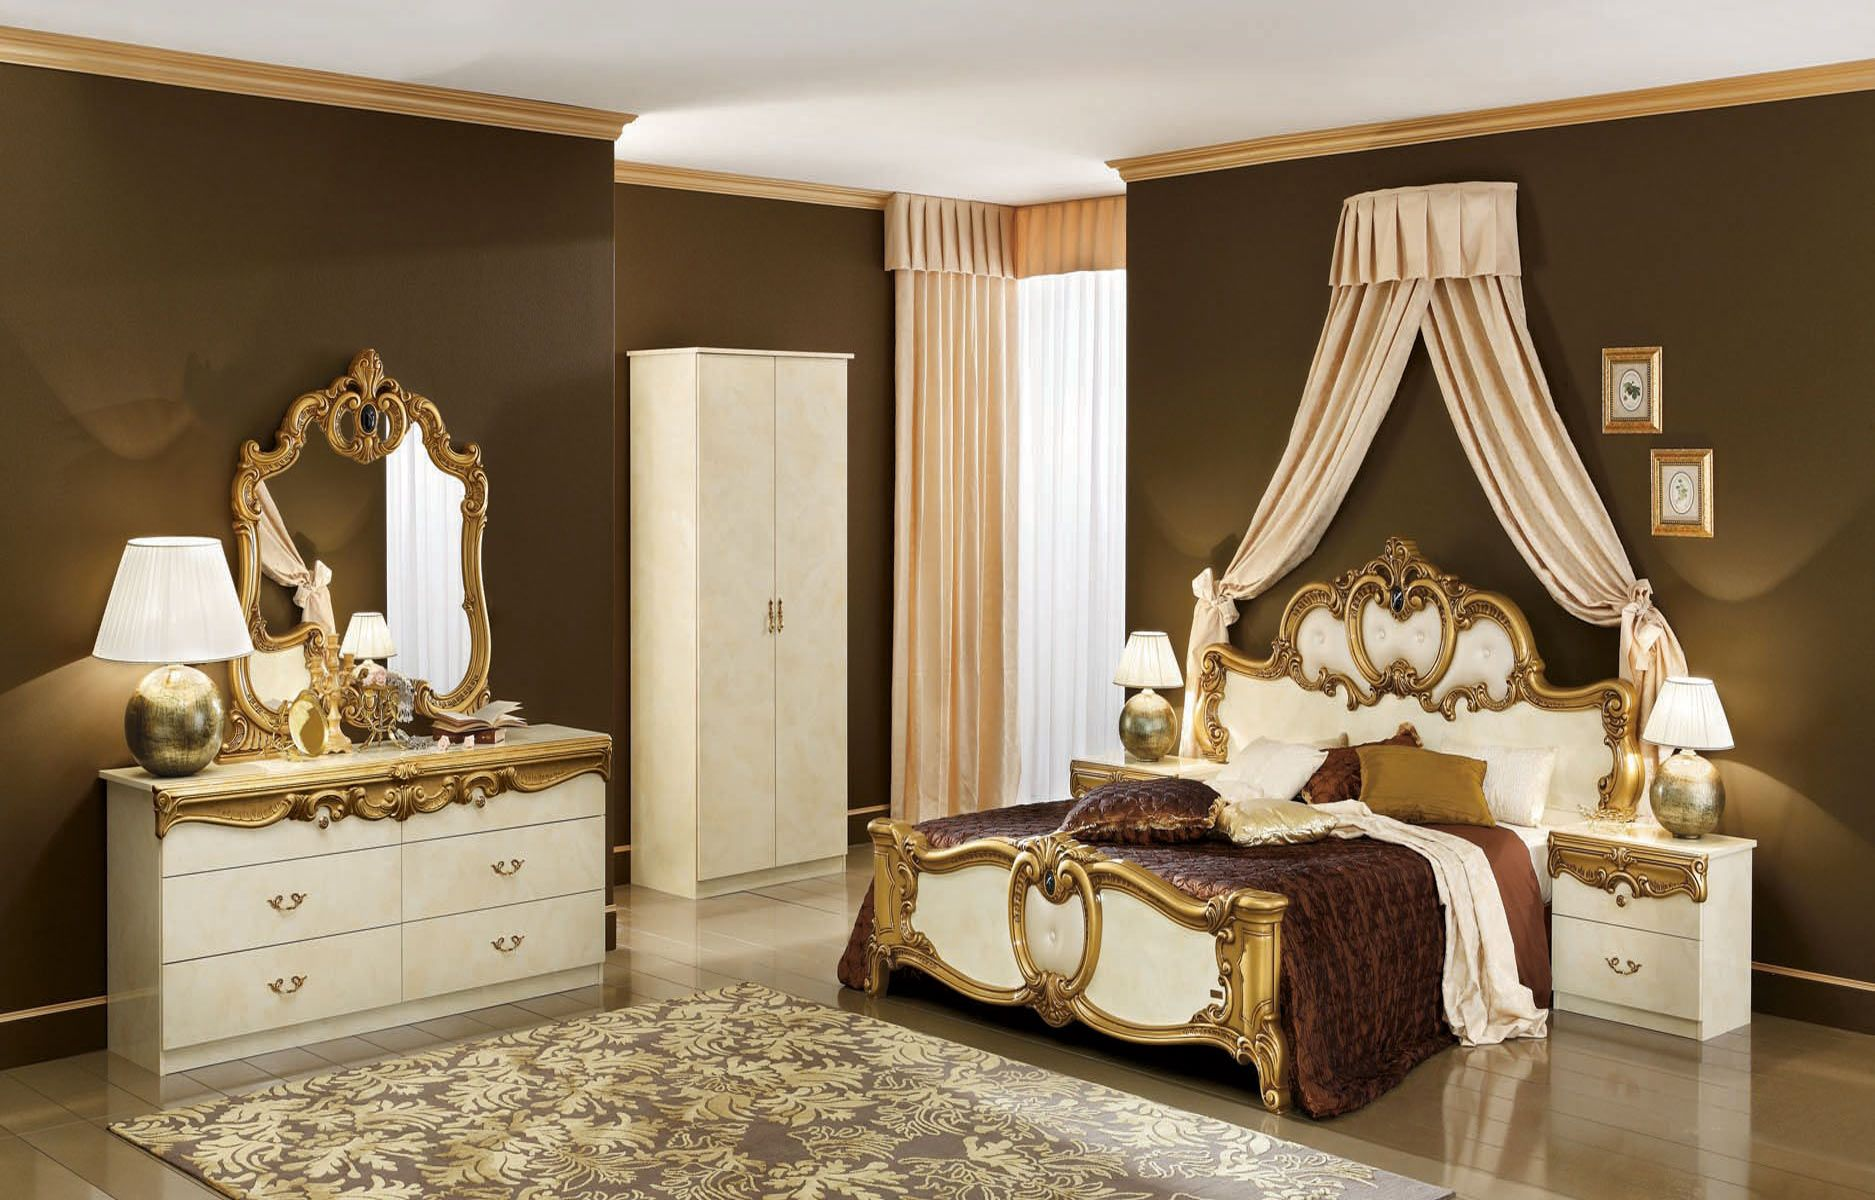 italian bedroom sets furniture. Find This Pin And More On Bedroom Decorating Ideas. Furniture Barocco Ivory Gold Classic Set Italian Sets K